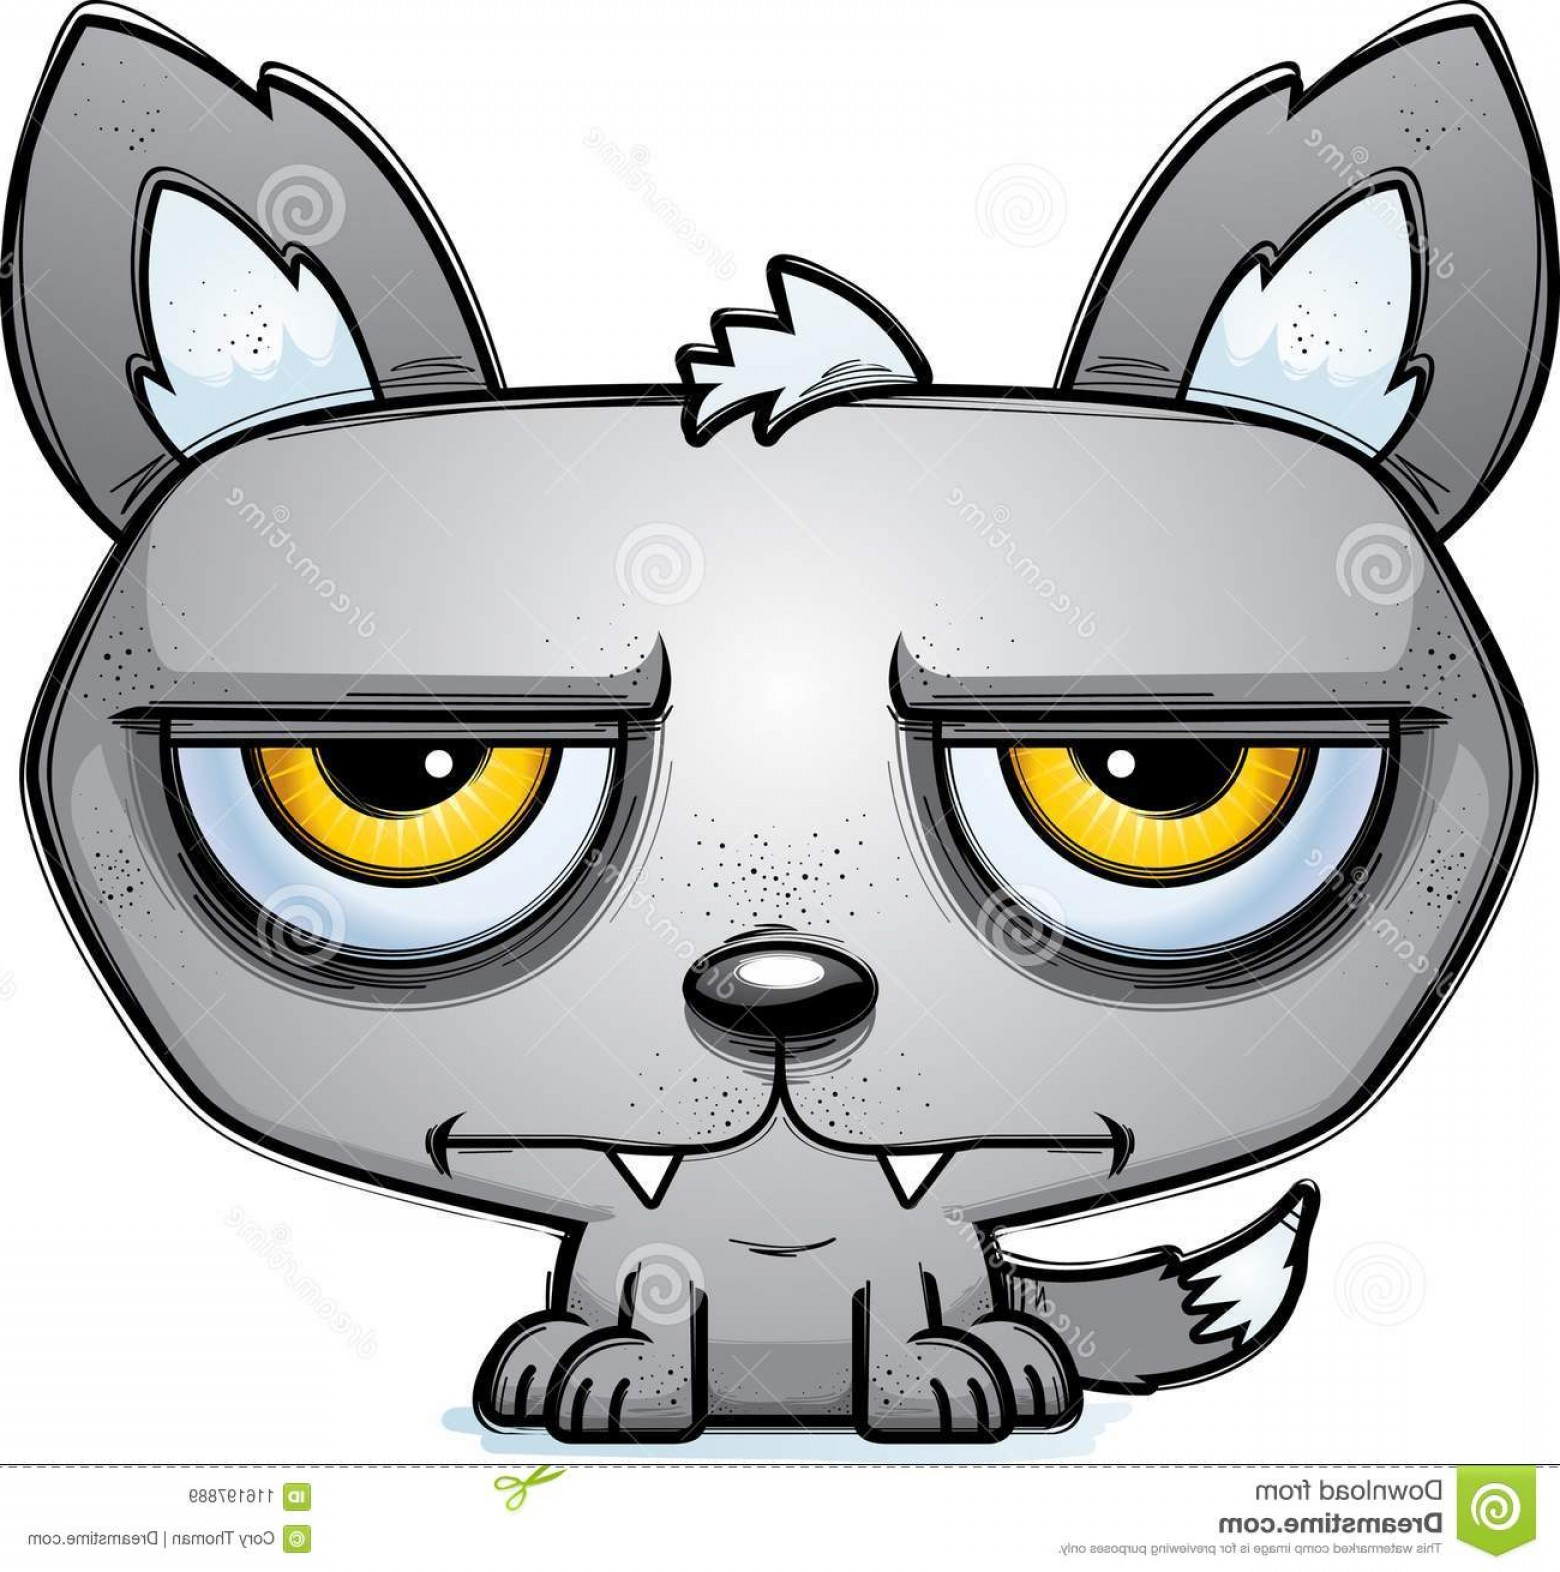 Calm Wolf Vector: Calm Little Cartoon Wolf Cartoon Illustration Wolf Looking Calm Image